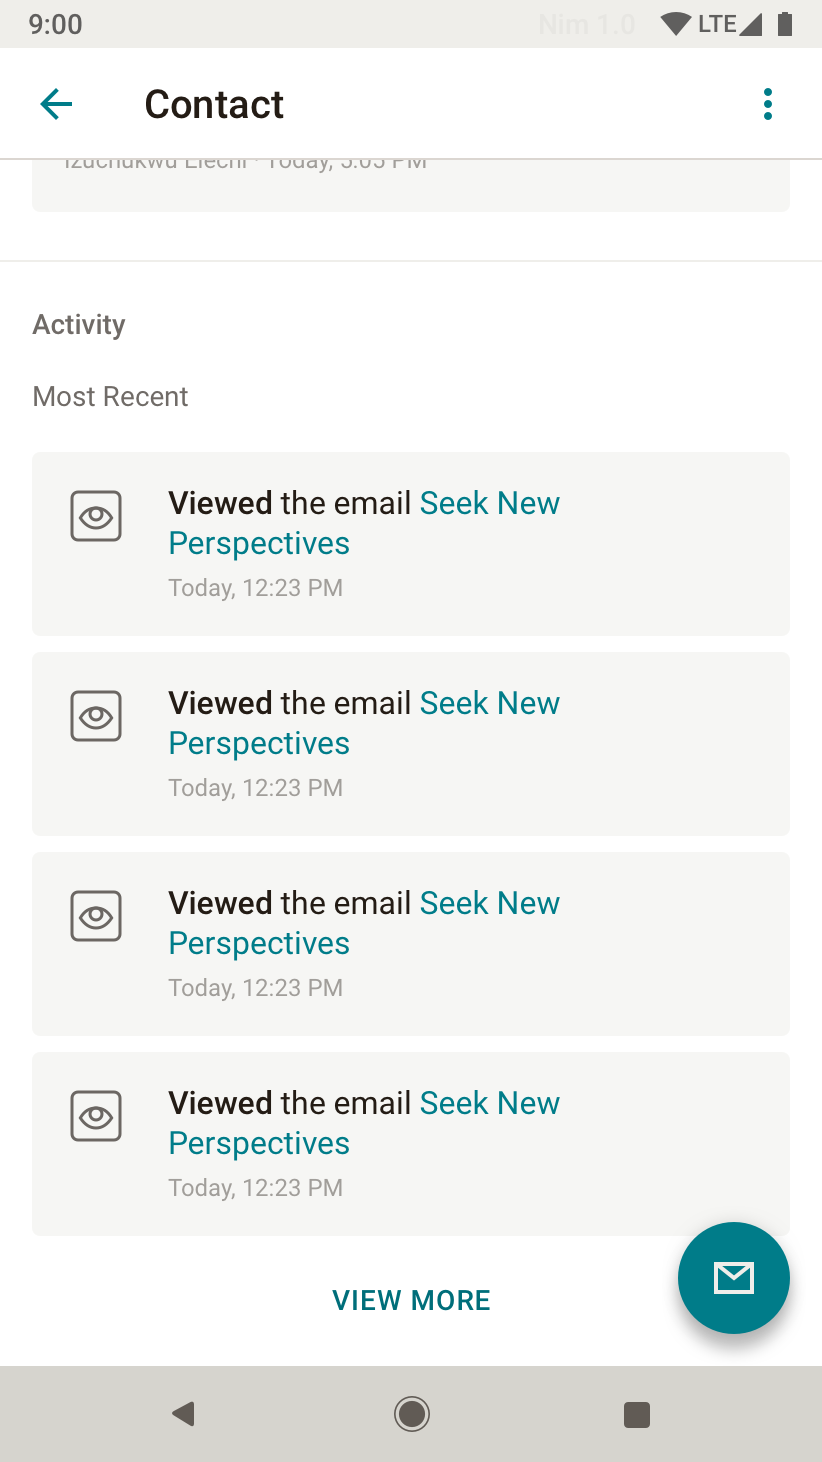 Users can view more nuanced activity, beyond just email campaigns.